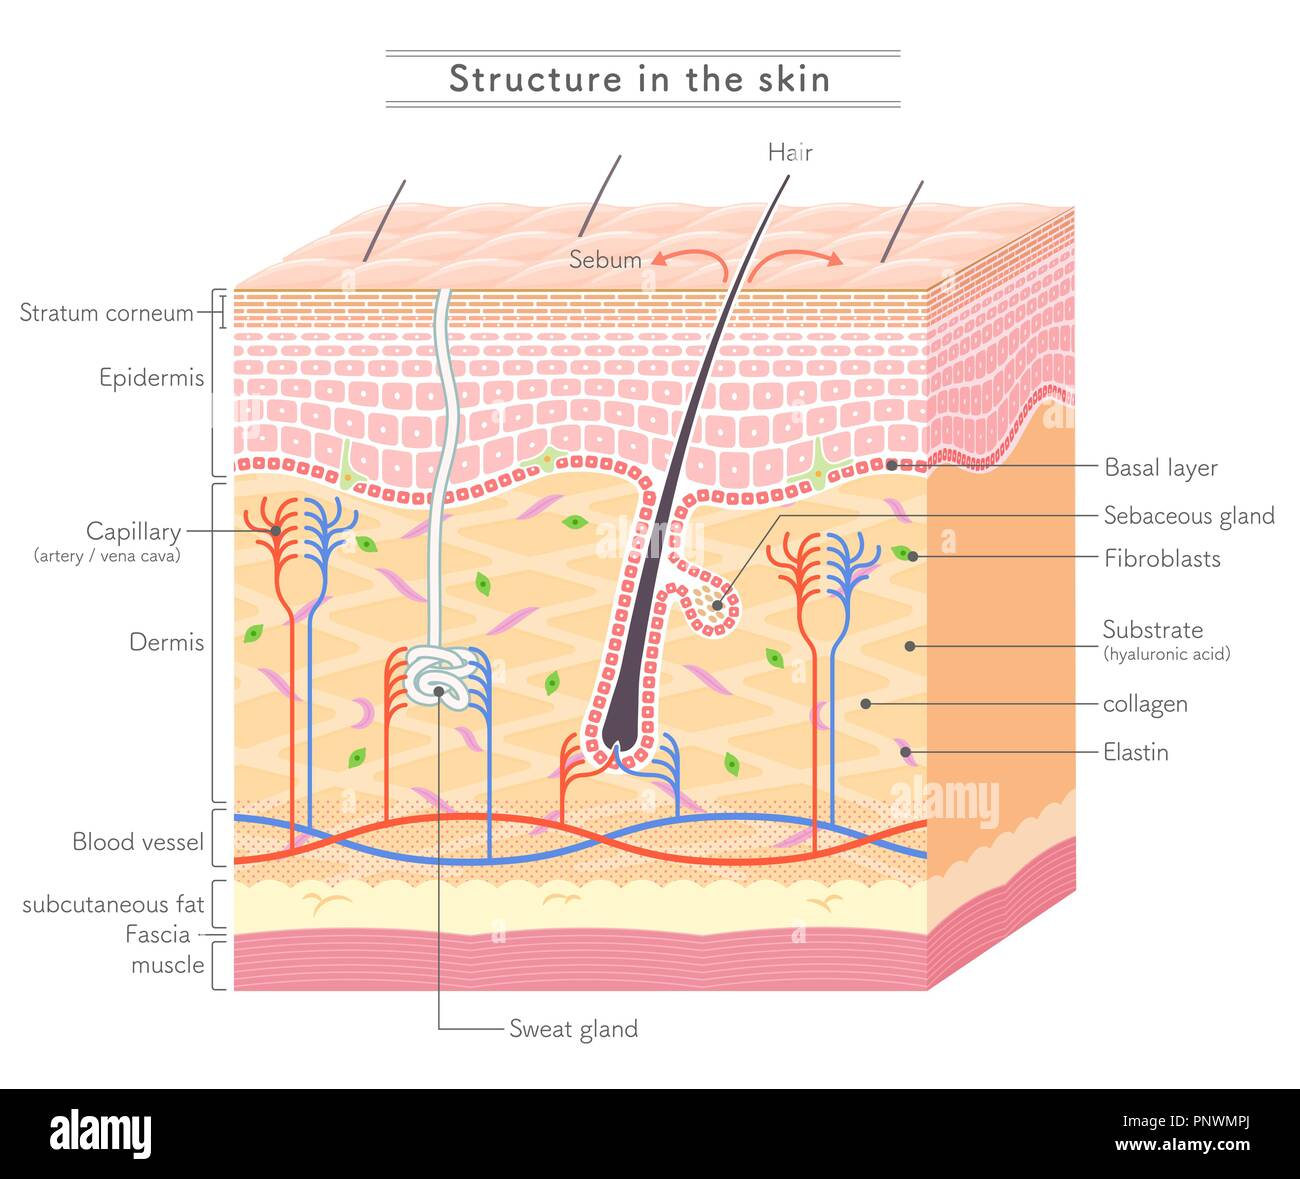 Structure in the skin_English notation - Stock Image